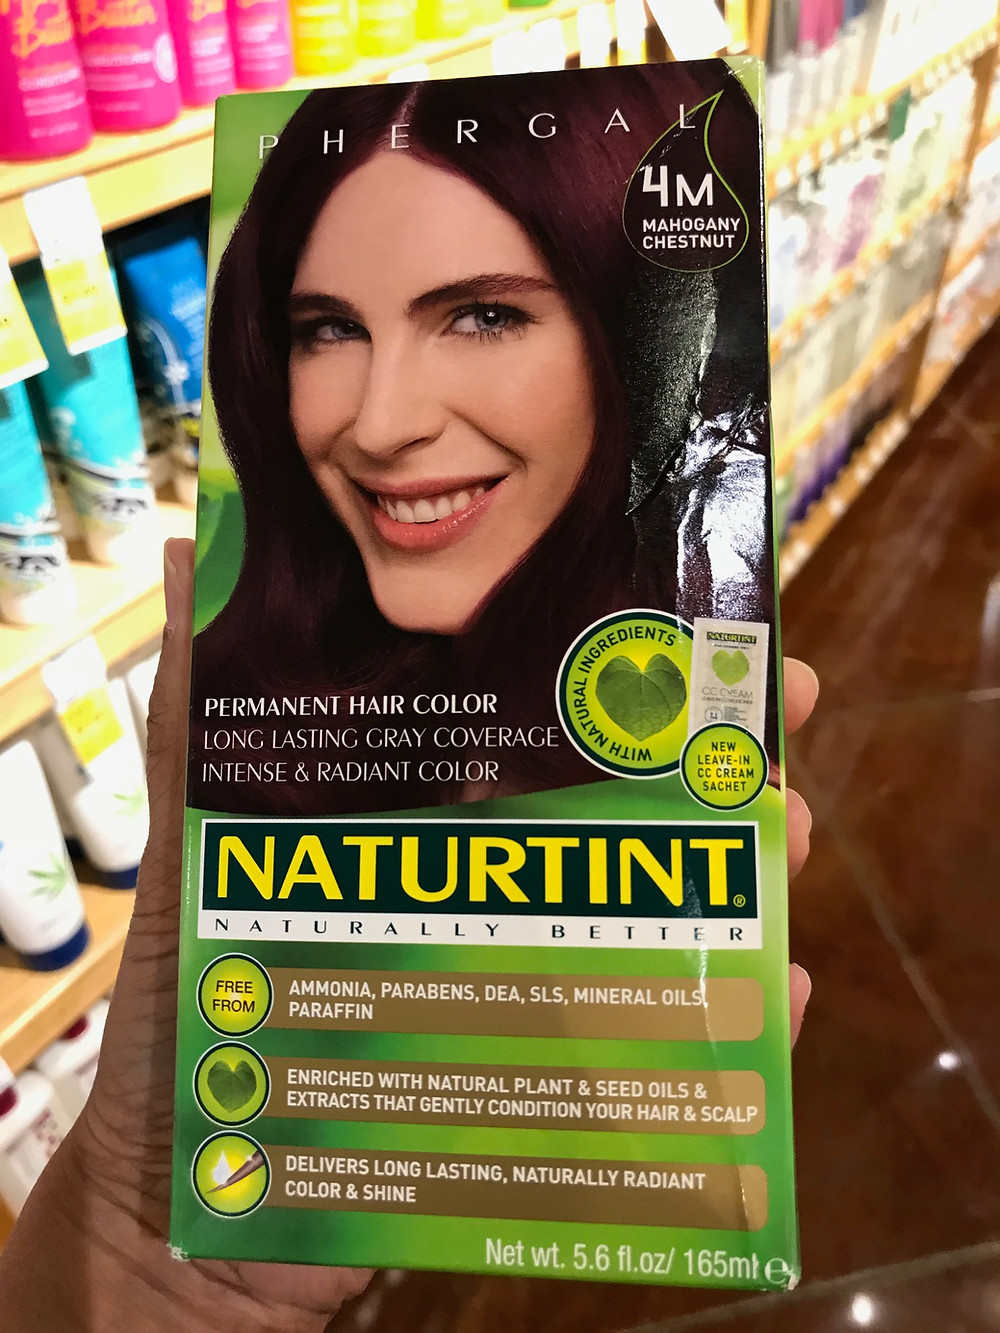 Front of hair dye box NATURTINT, which contains p-phenylenediamine